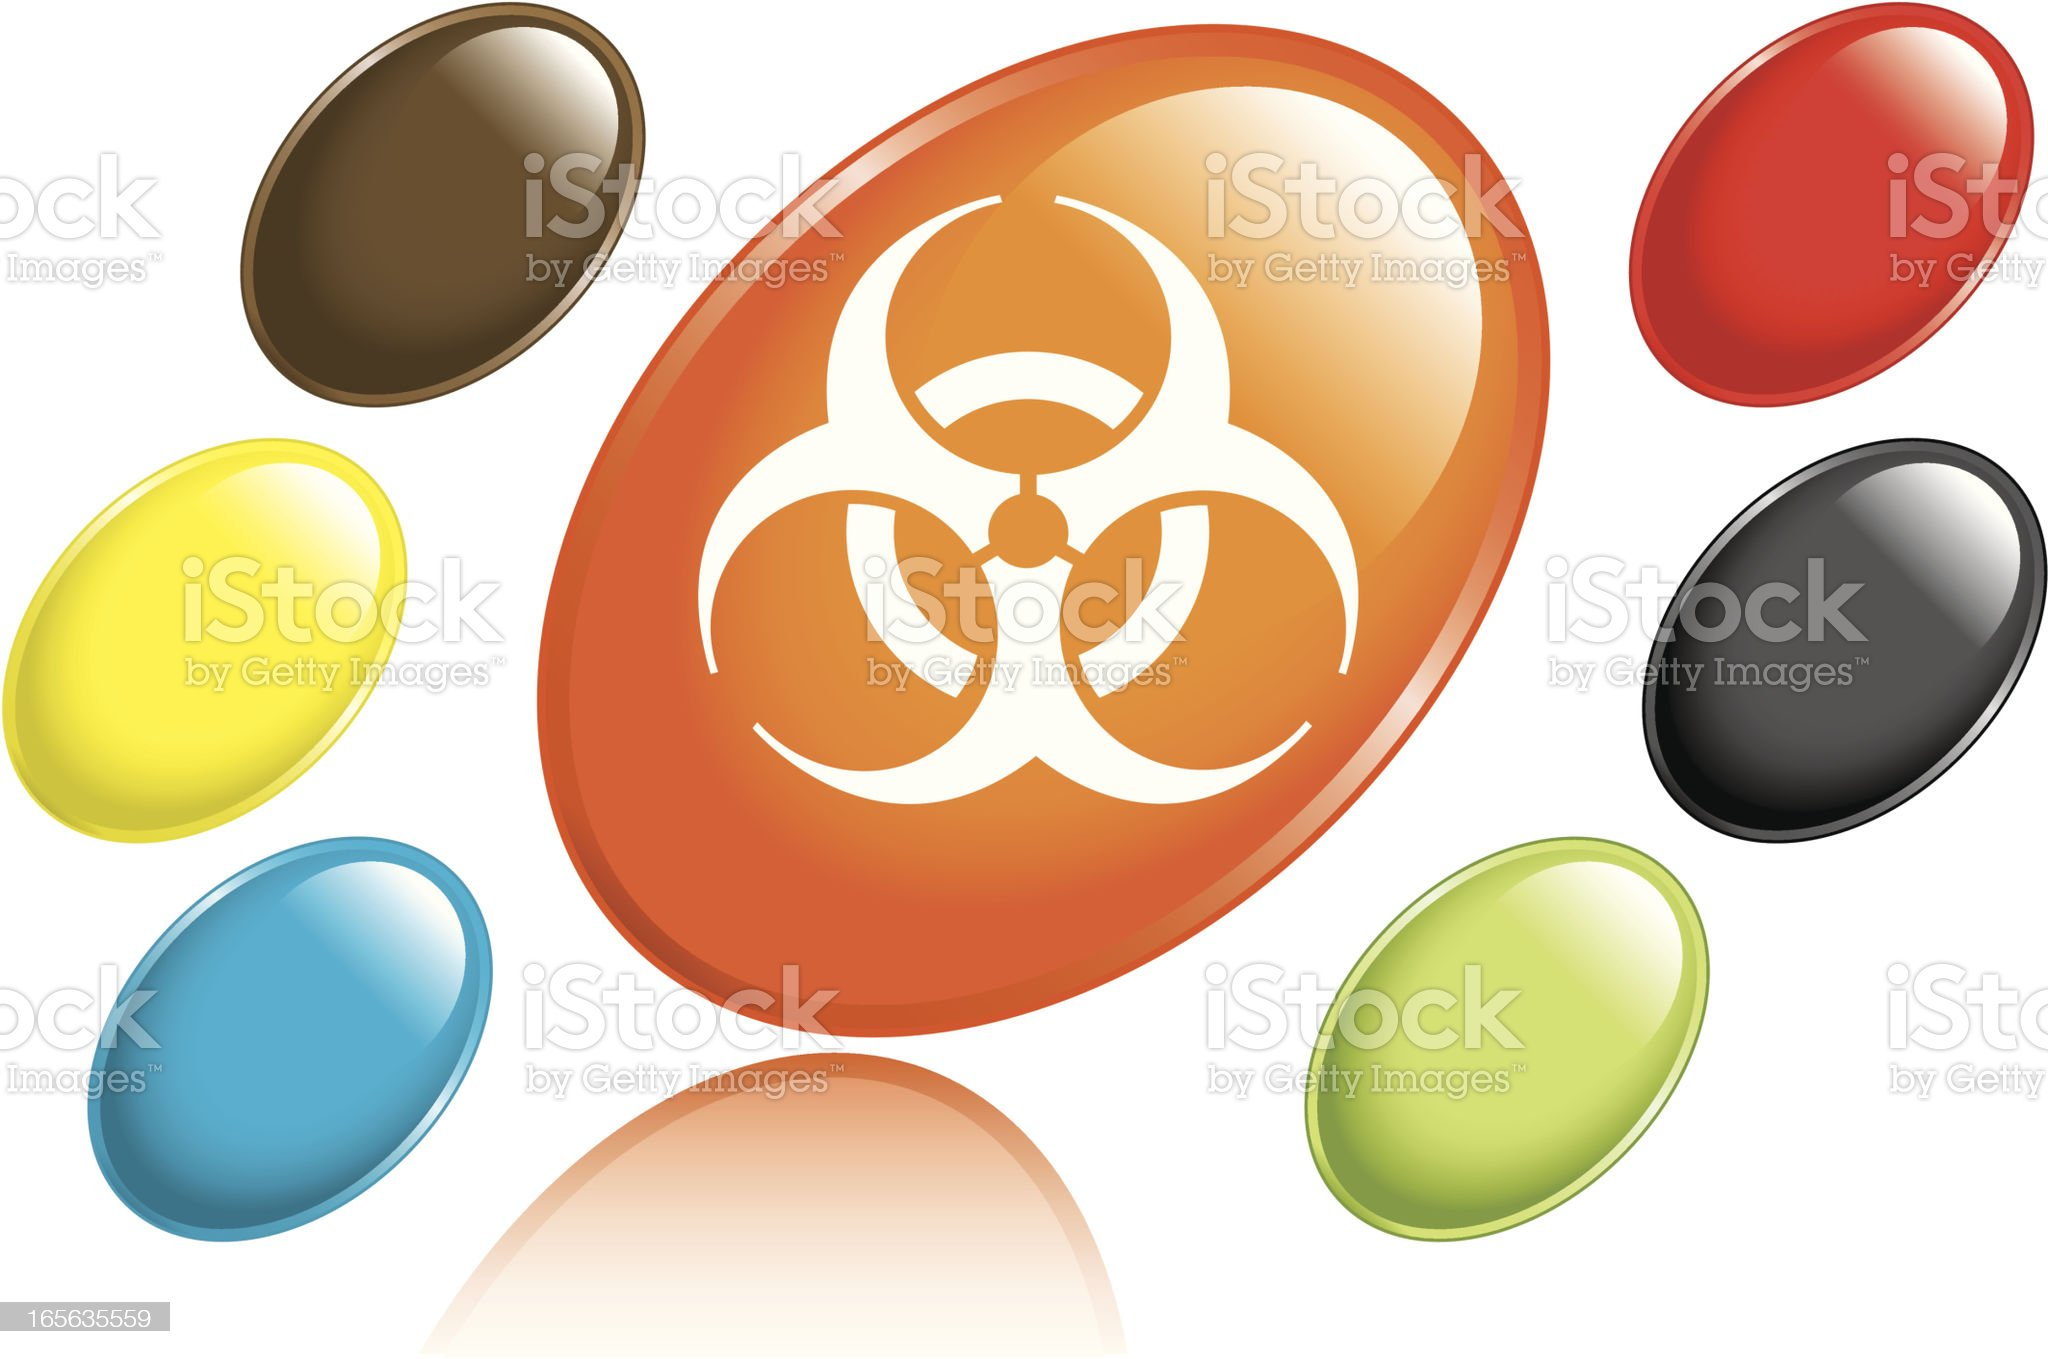 Biohazard Icon royalty-free stock vector art